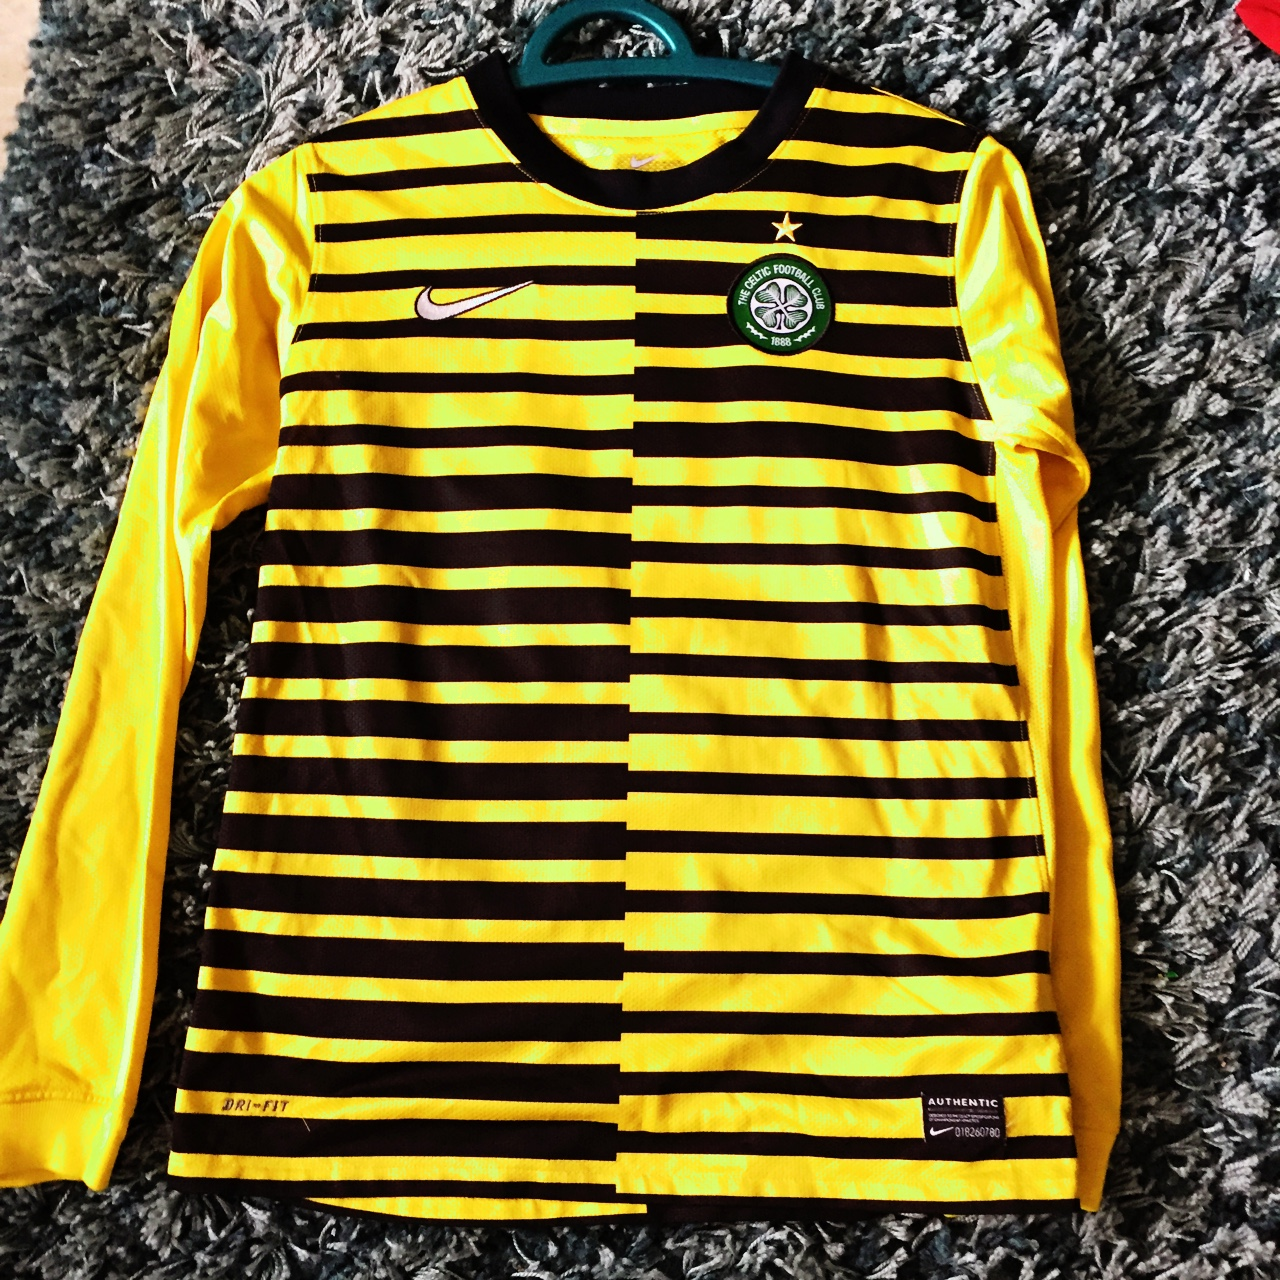 a47afb448 sellingstuff43. Glasgow, United Kingdom. Yellow and black Celtic football  top large boys age 12-13.